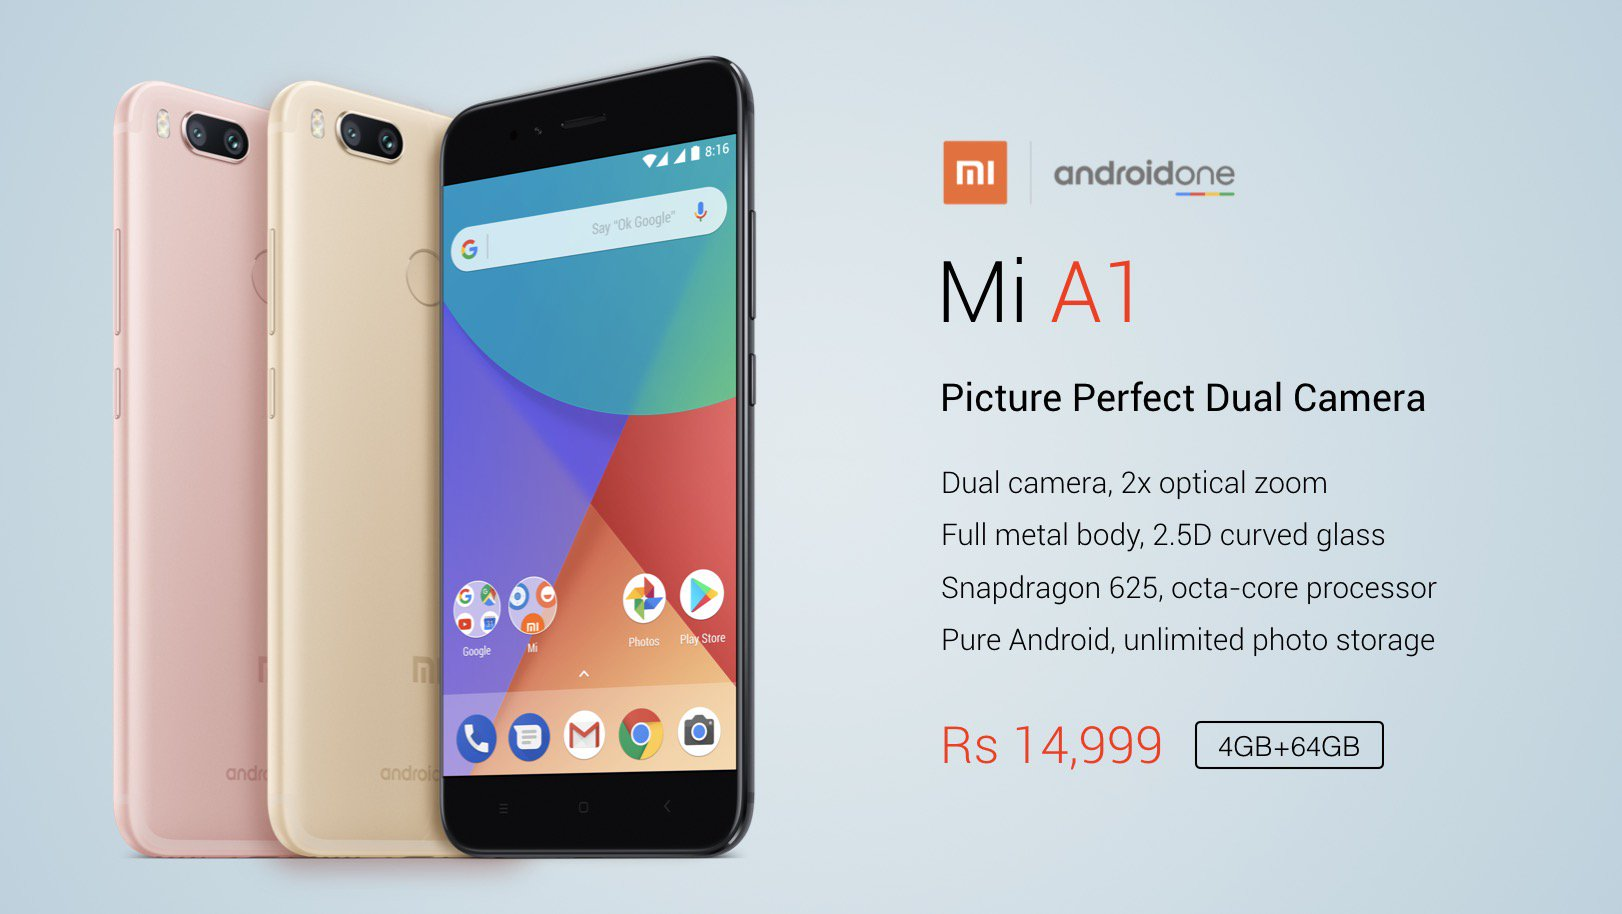 Xiaomi Mi A1 Smartphone Launched Powered By Android One Project